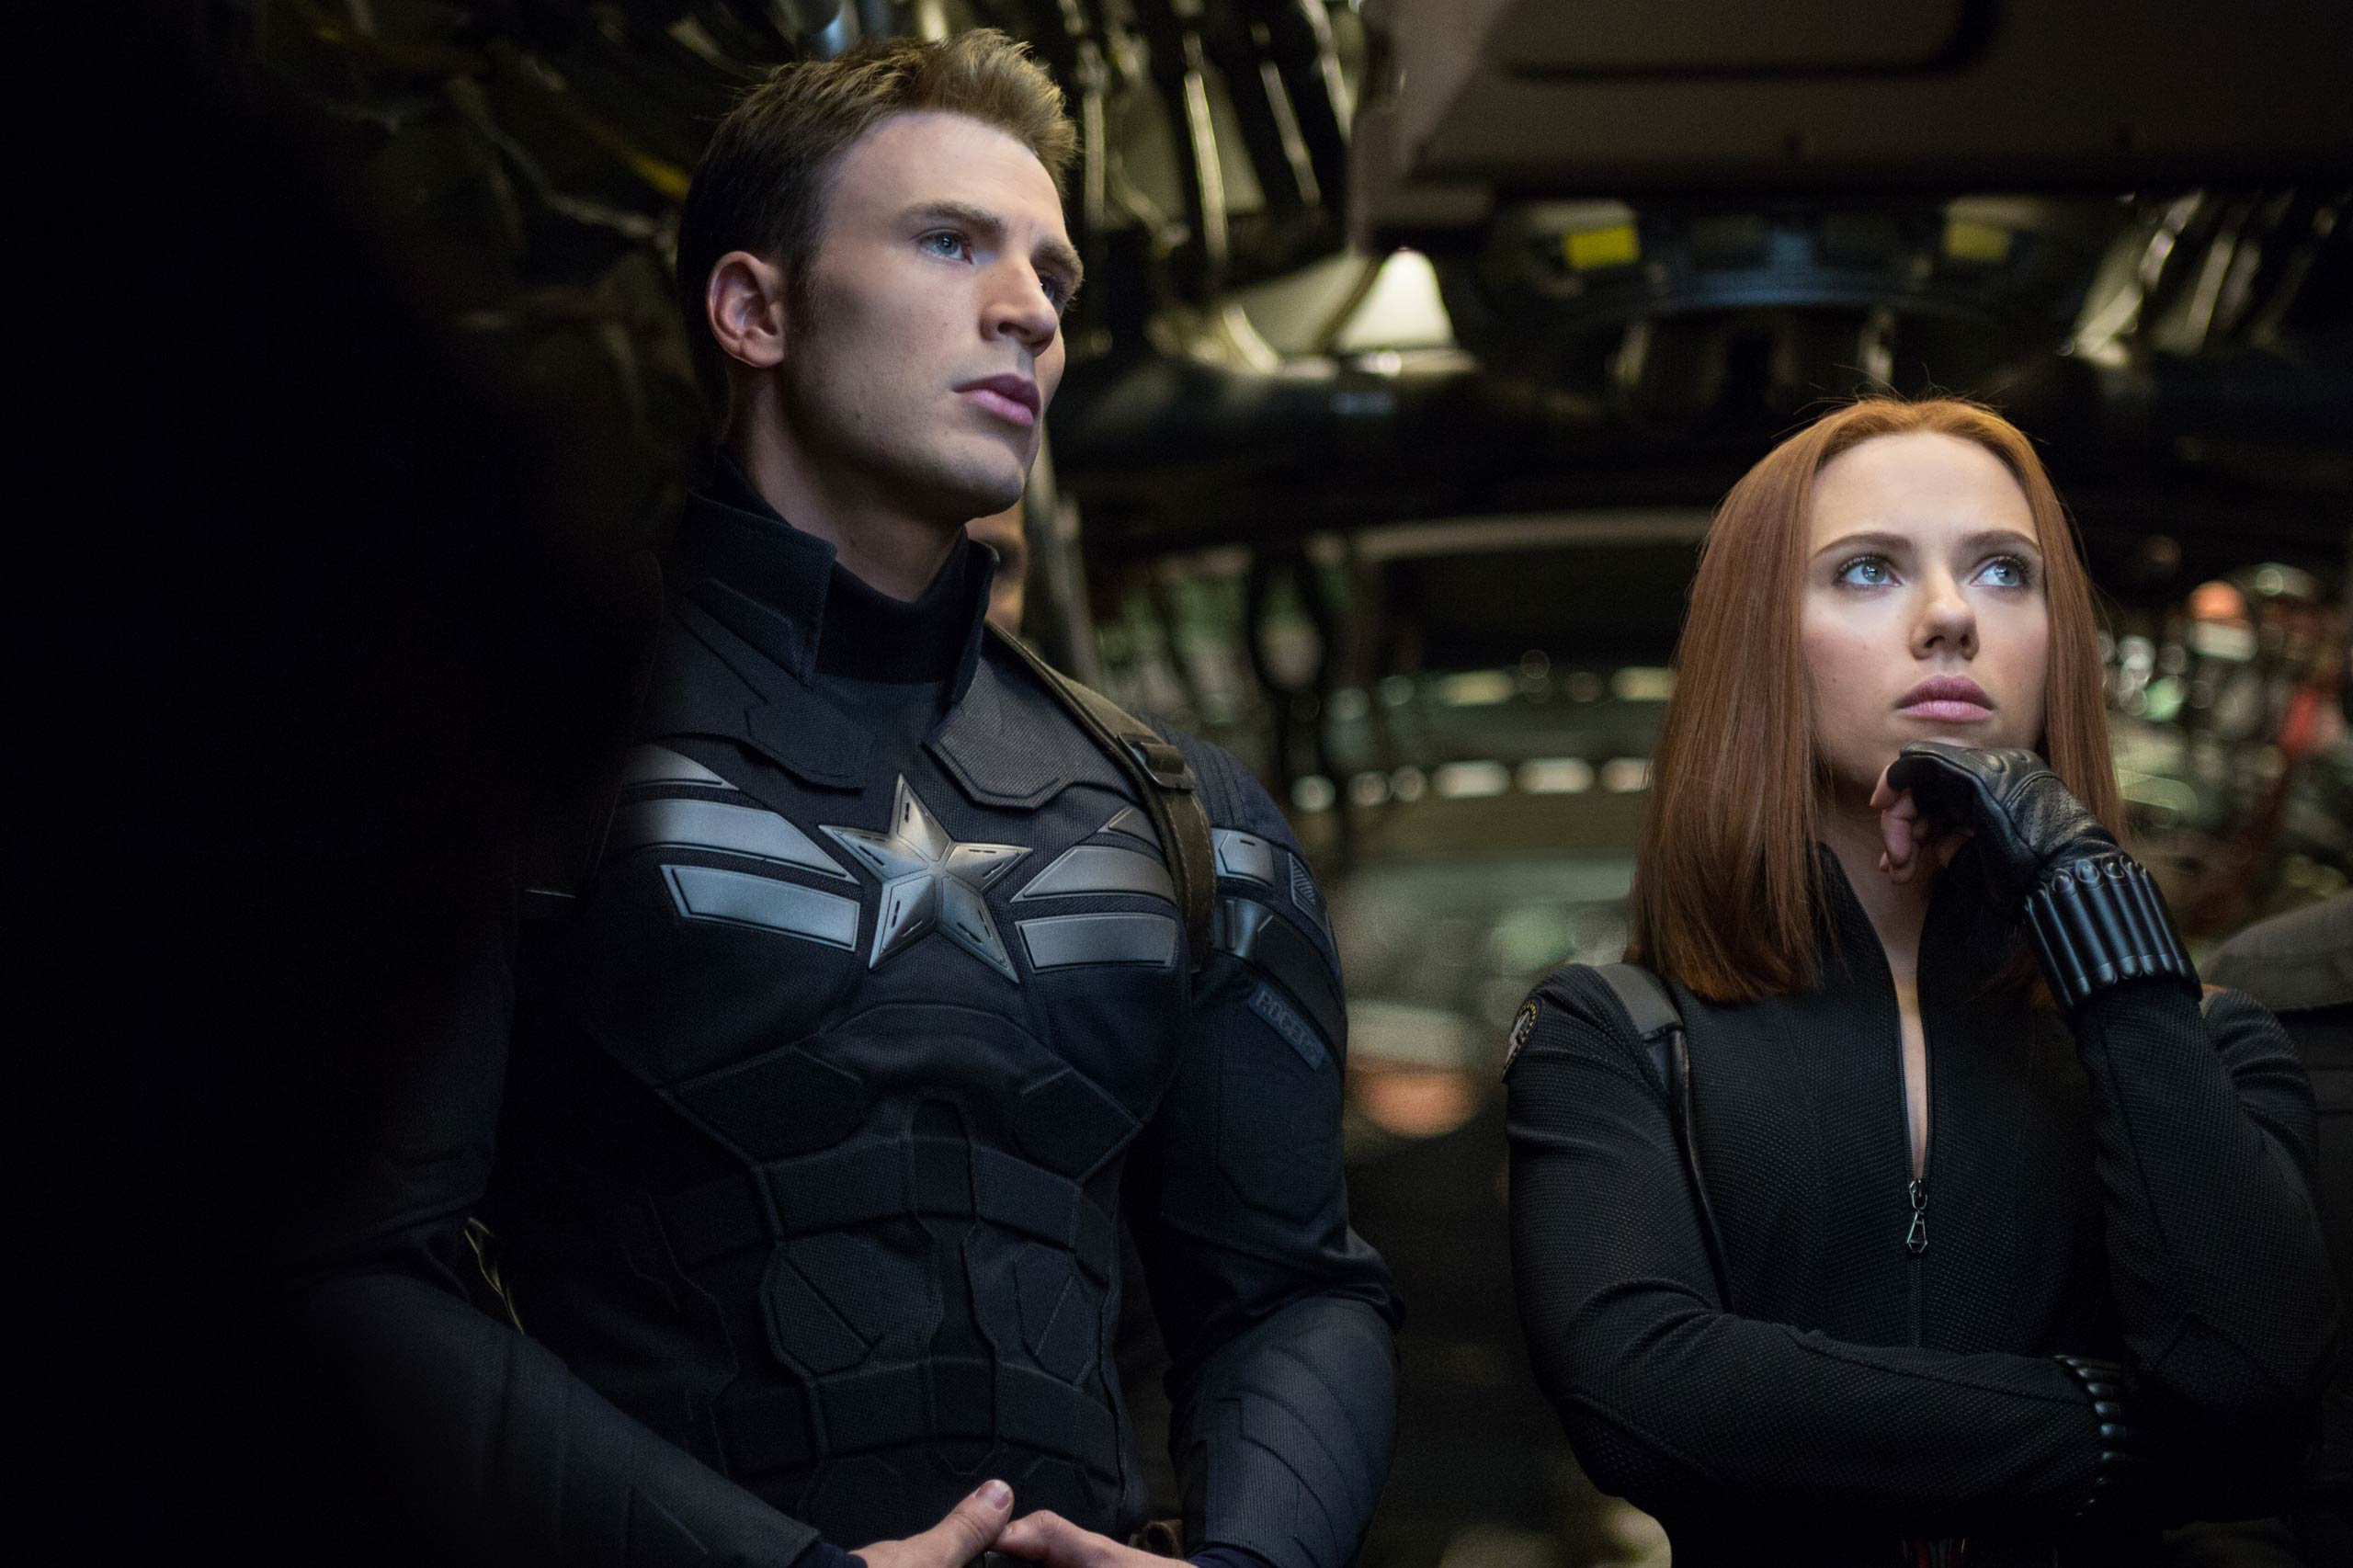 3. Captain America: The Winter Soldier - $259,766,572